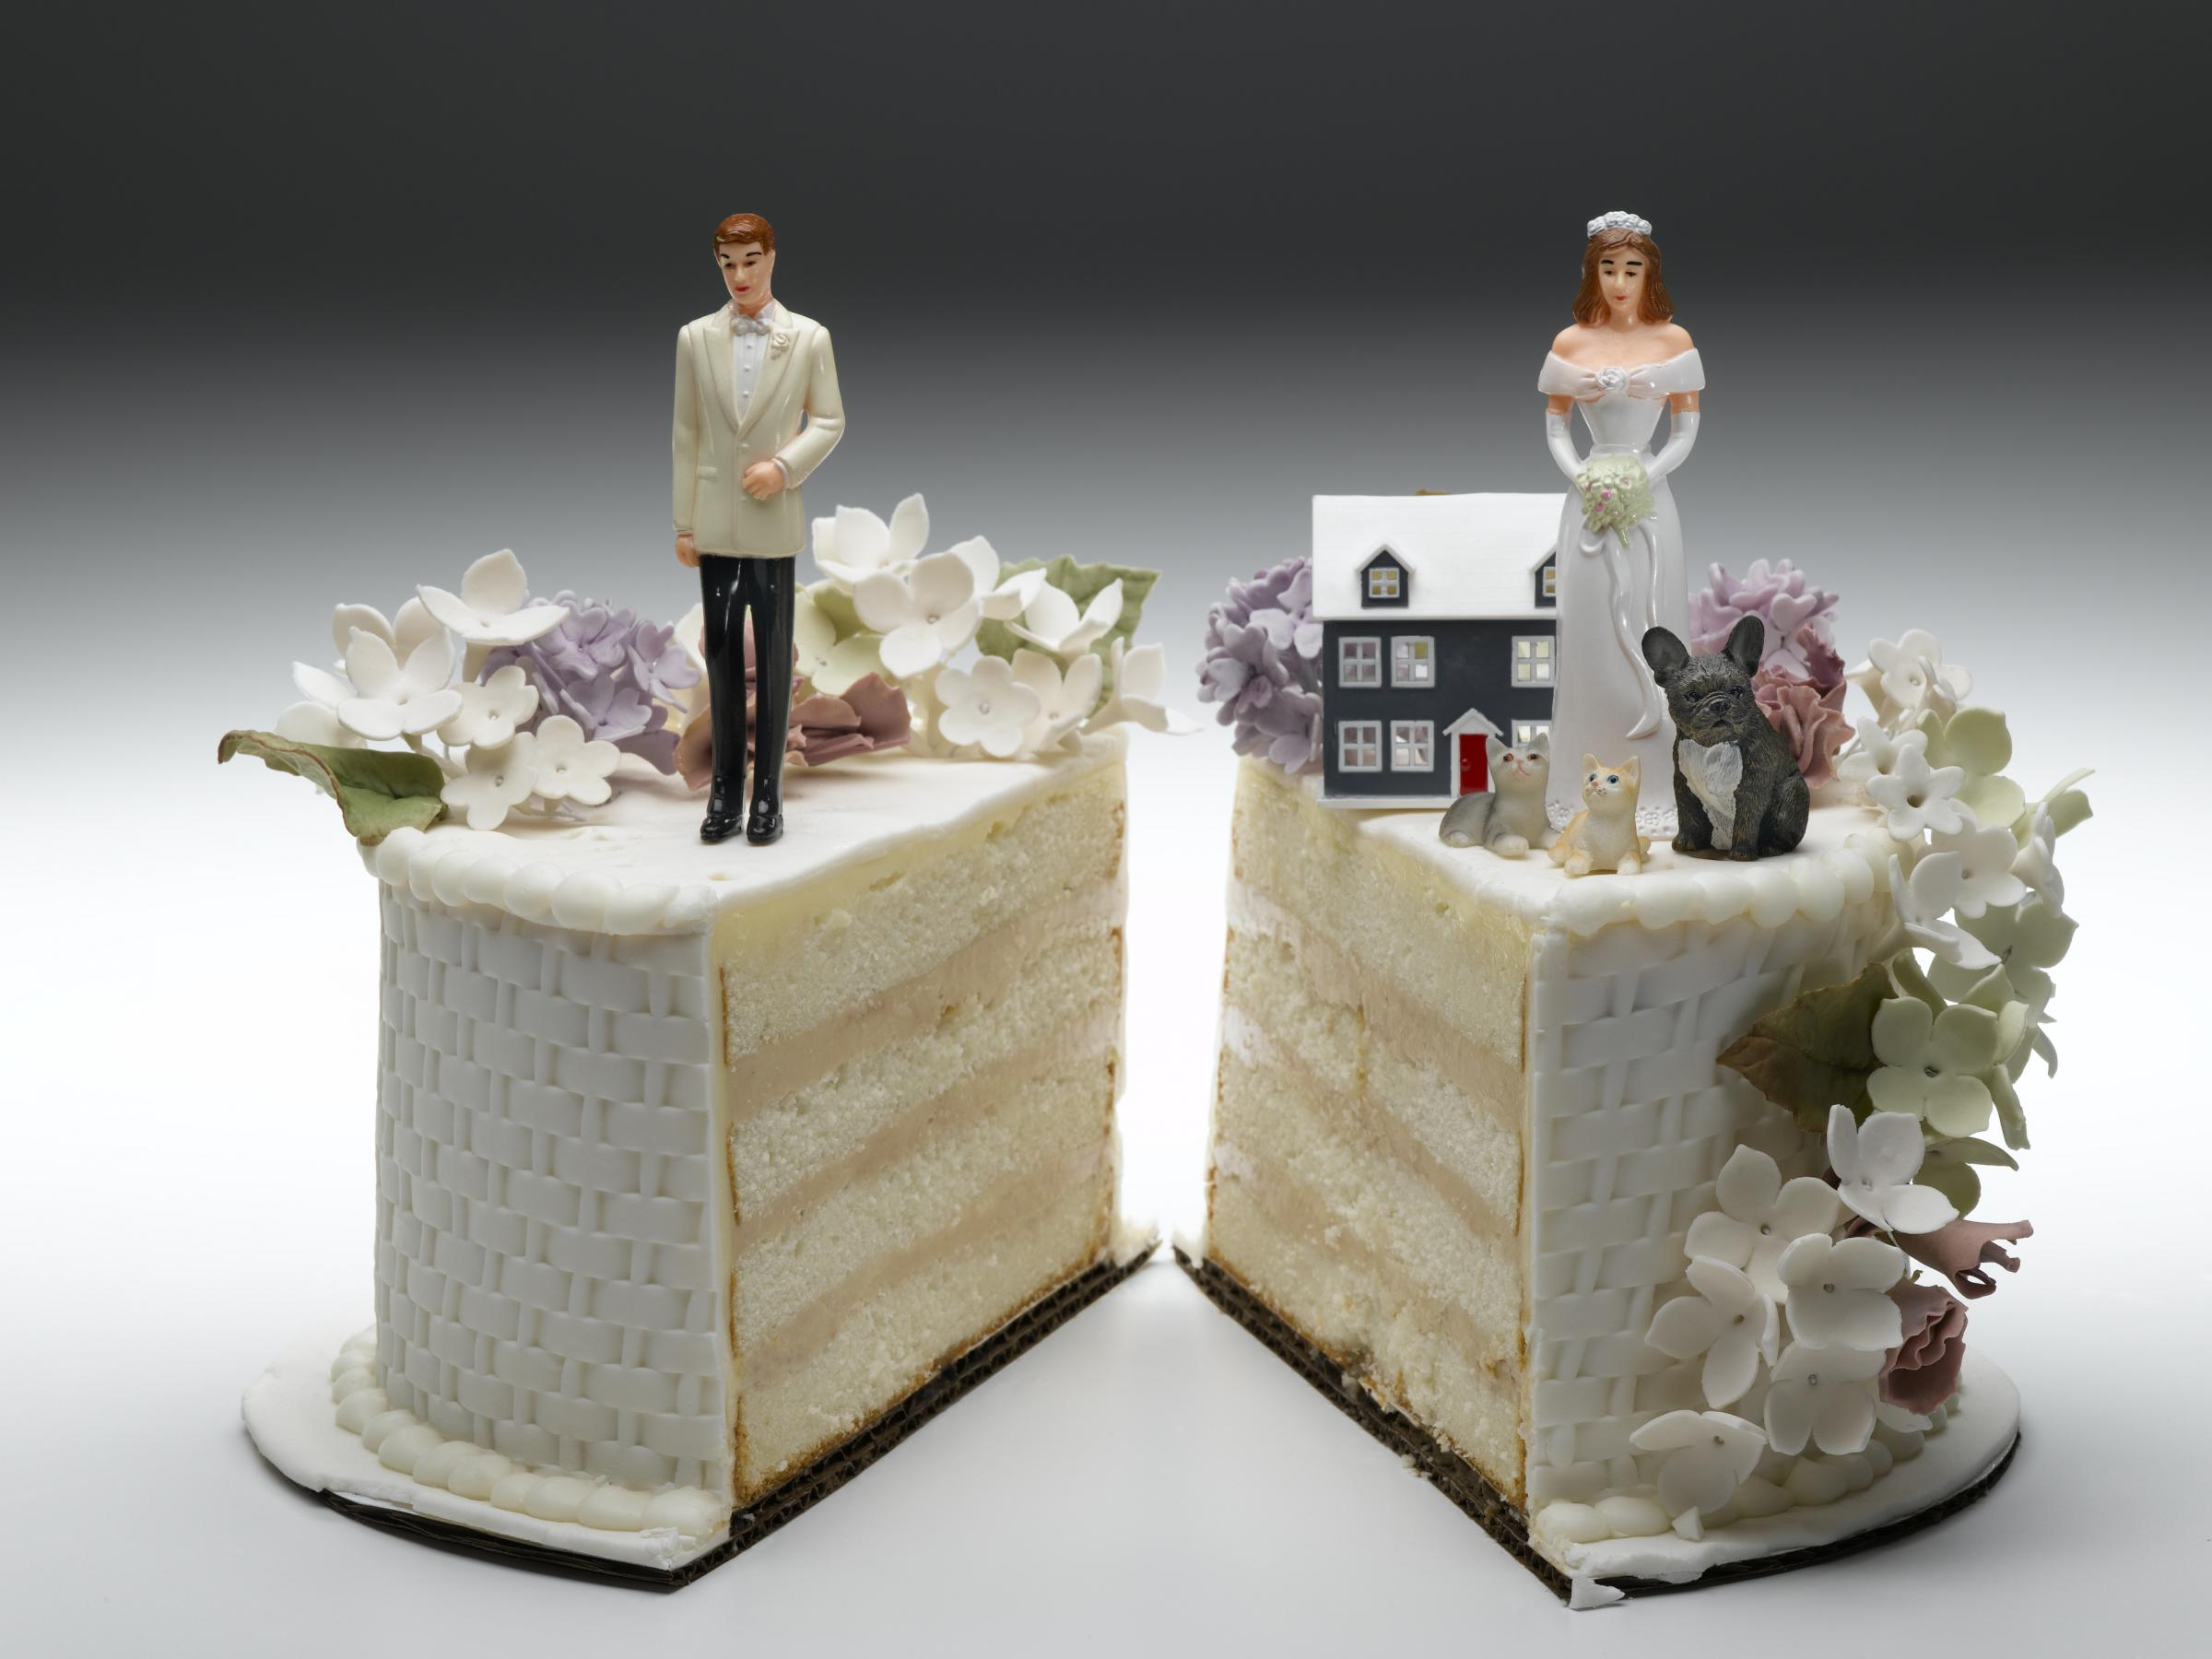 Divorce Bride and groom figurines standing on two separated slices of wedding cake.